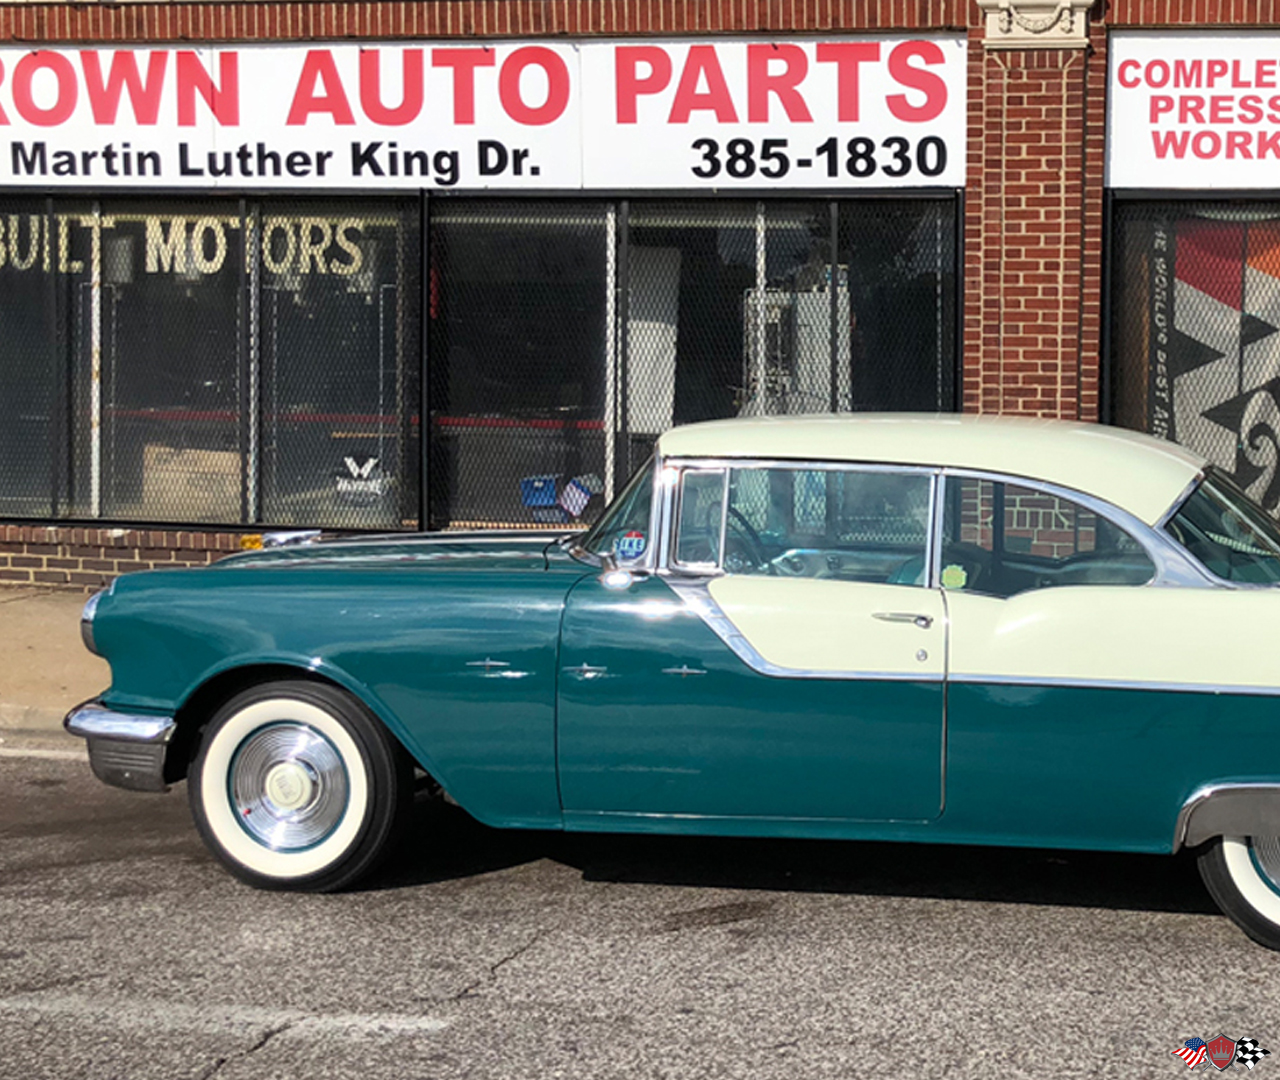 1955 Pontiac Star chief out front of Crown Auto Parts